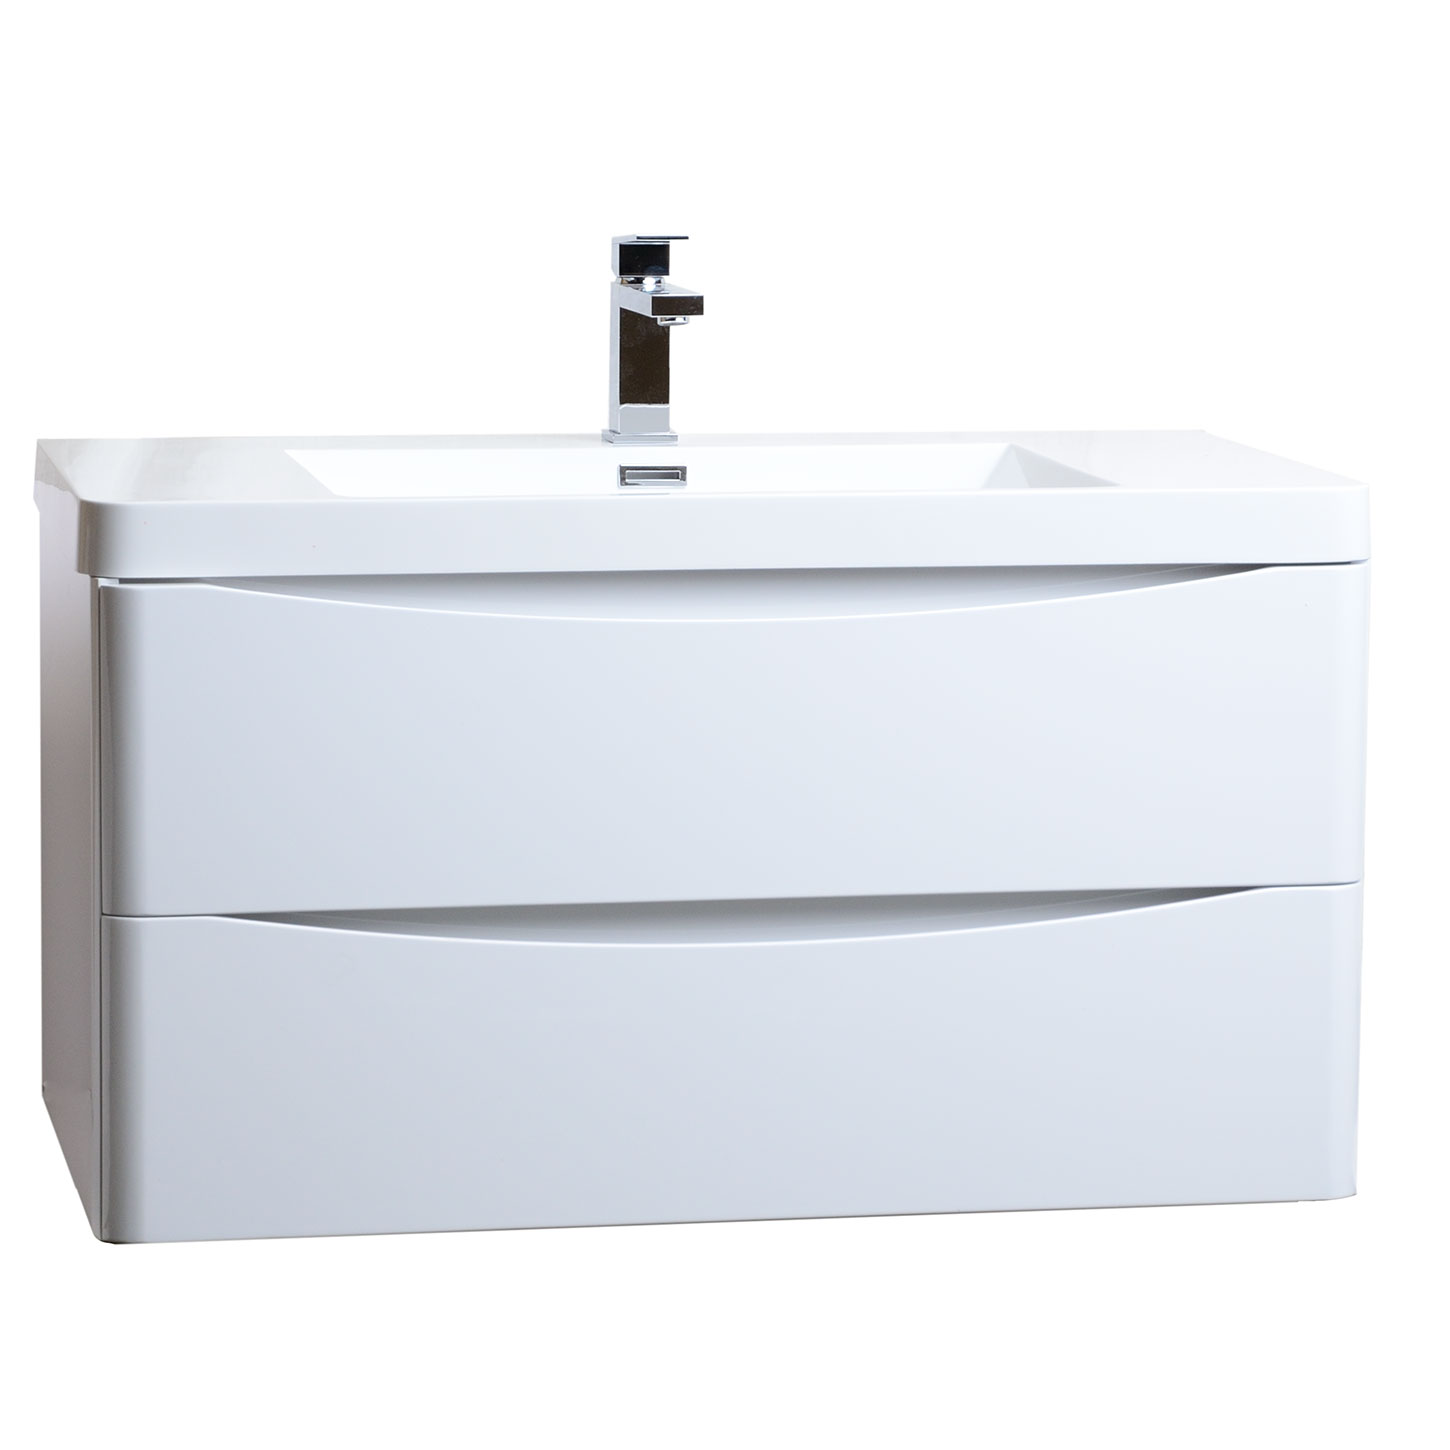 Wall Mounted Bathroom Cabinet White - 4k Wallpapers Design